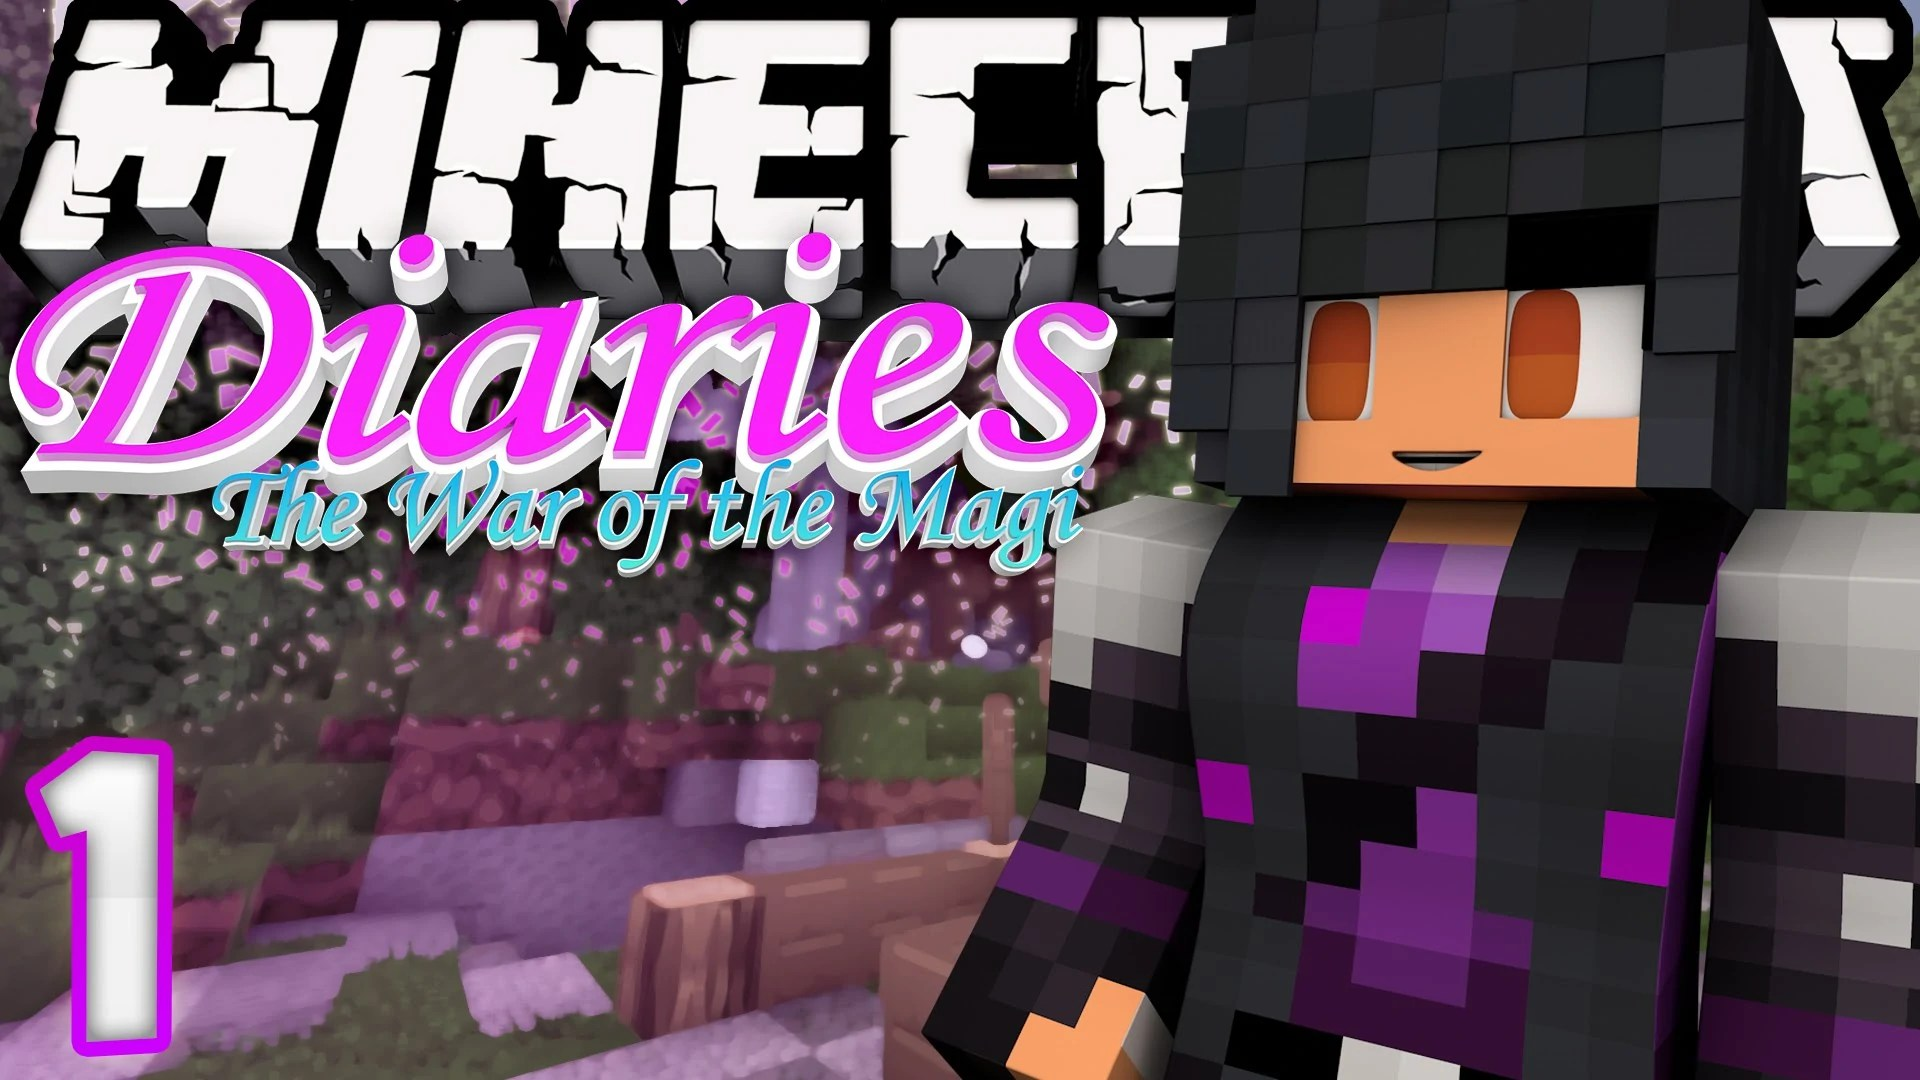 Dante On This Page Quotes Wallpaper Aphmau Minecraft Diaries S2 Aphmau Wiki Fandom